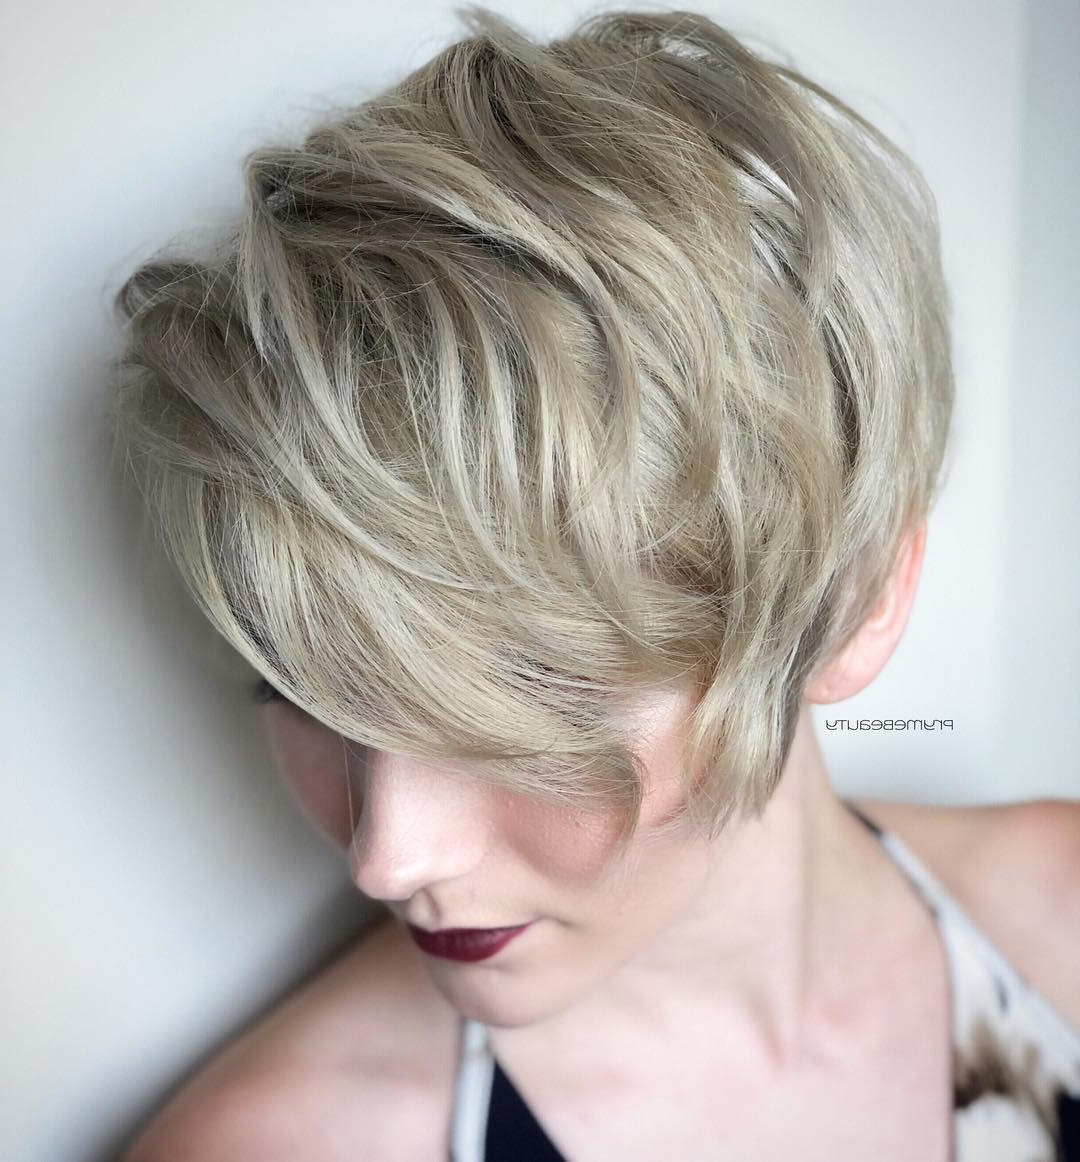 Top 10 Trendy, Low Maintenance Short Layered Hairstyles 2020 Pertaining To Most Current Bob Hairstyles With Subtle Layers (View 19 of 20)